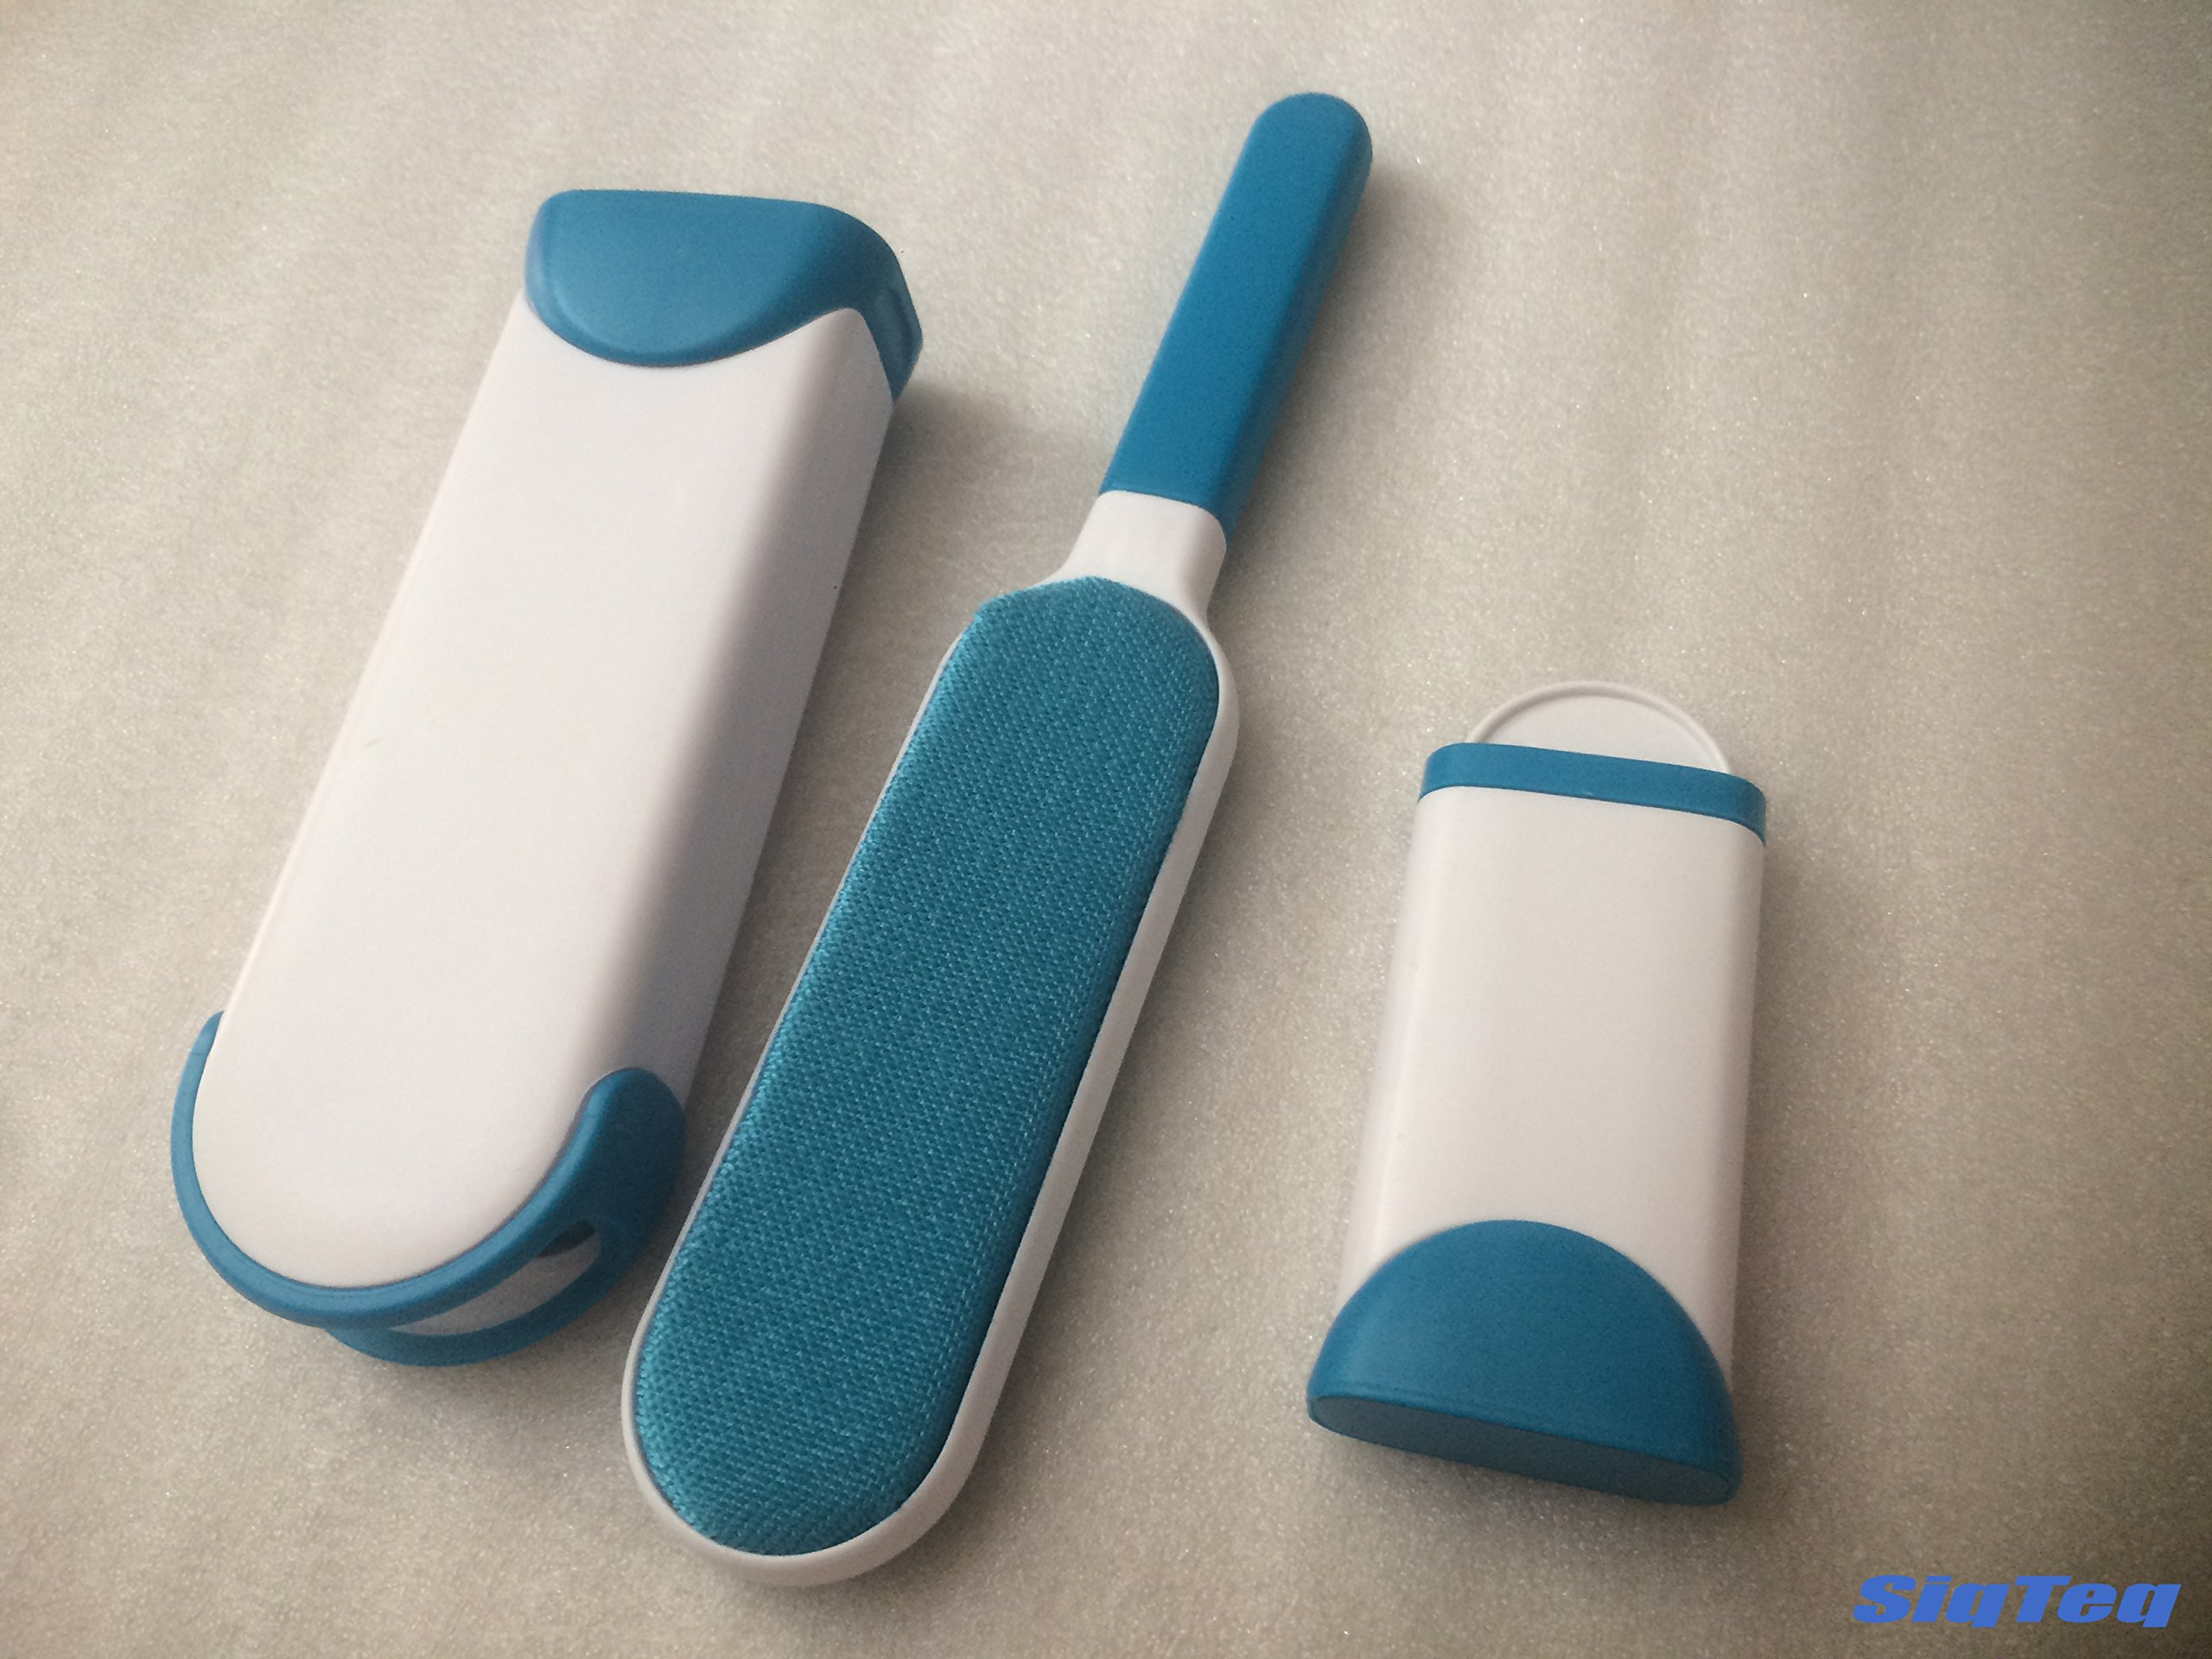 Pet Fur & Lint Remover with Self-Cleaning Base - Comes with free travel sized brush!